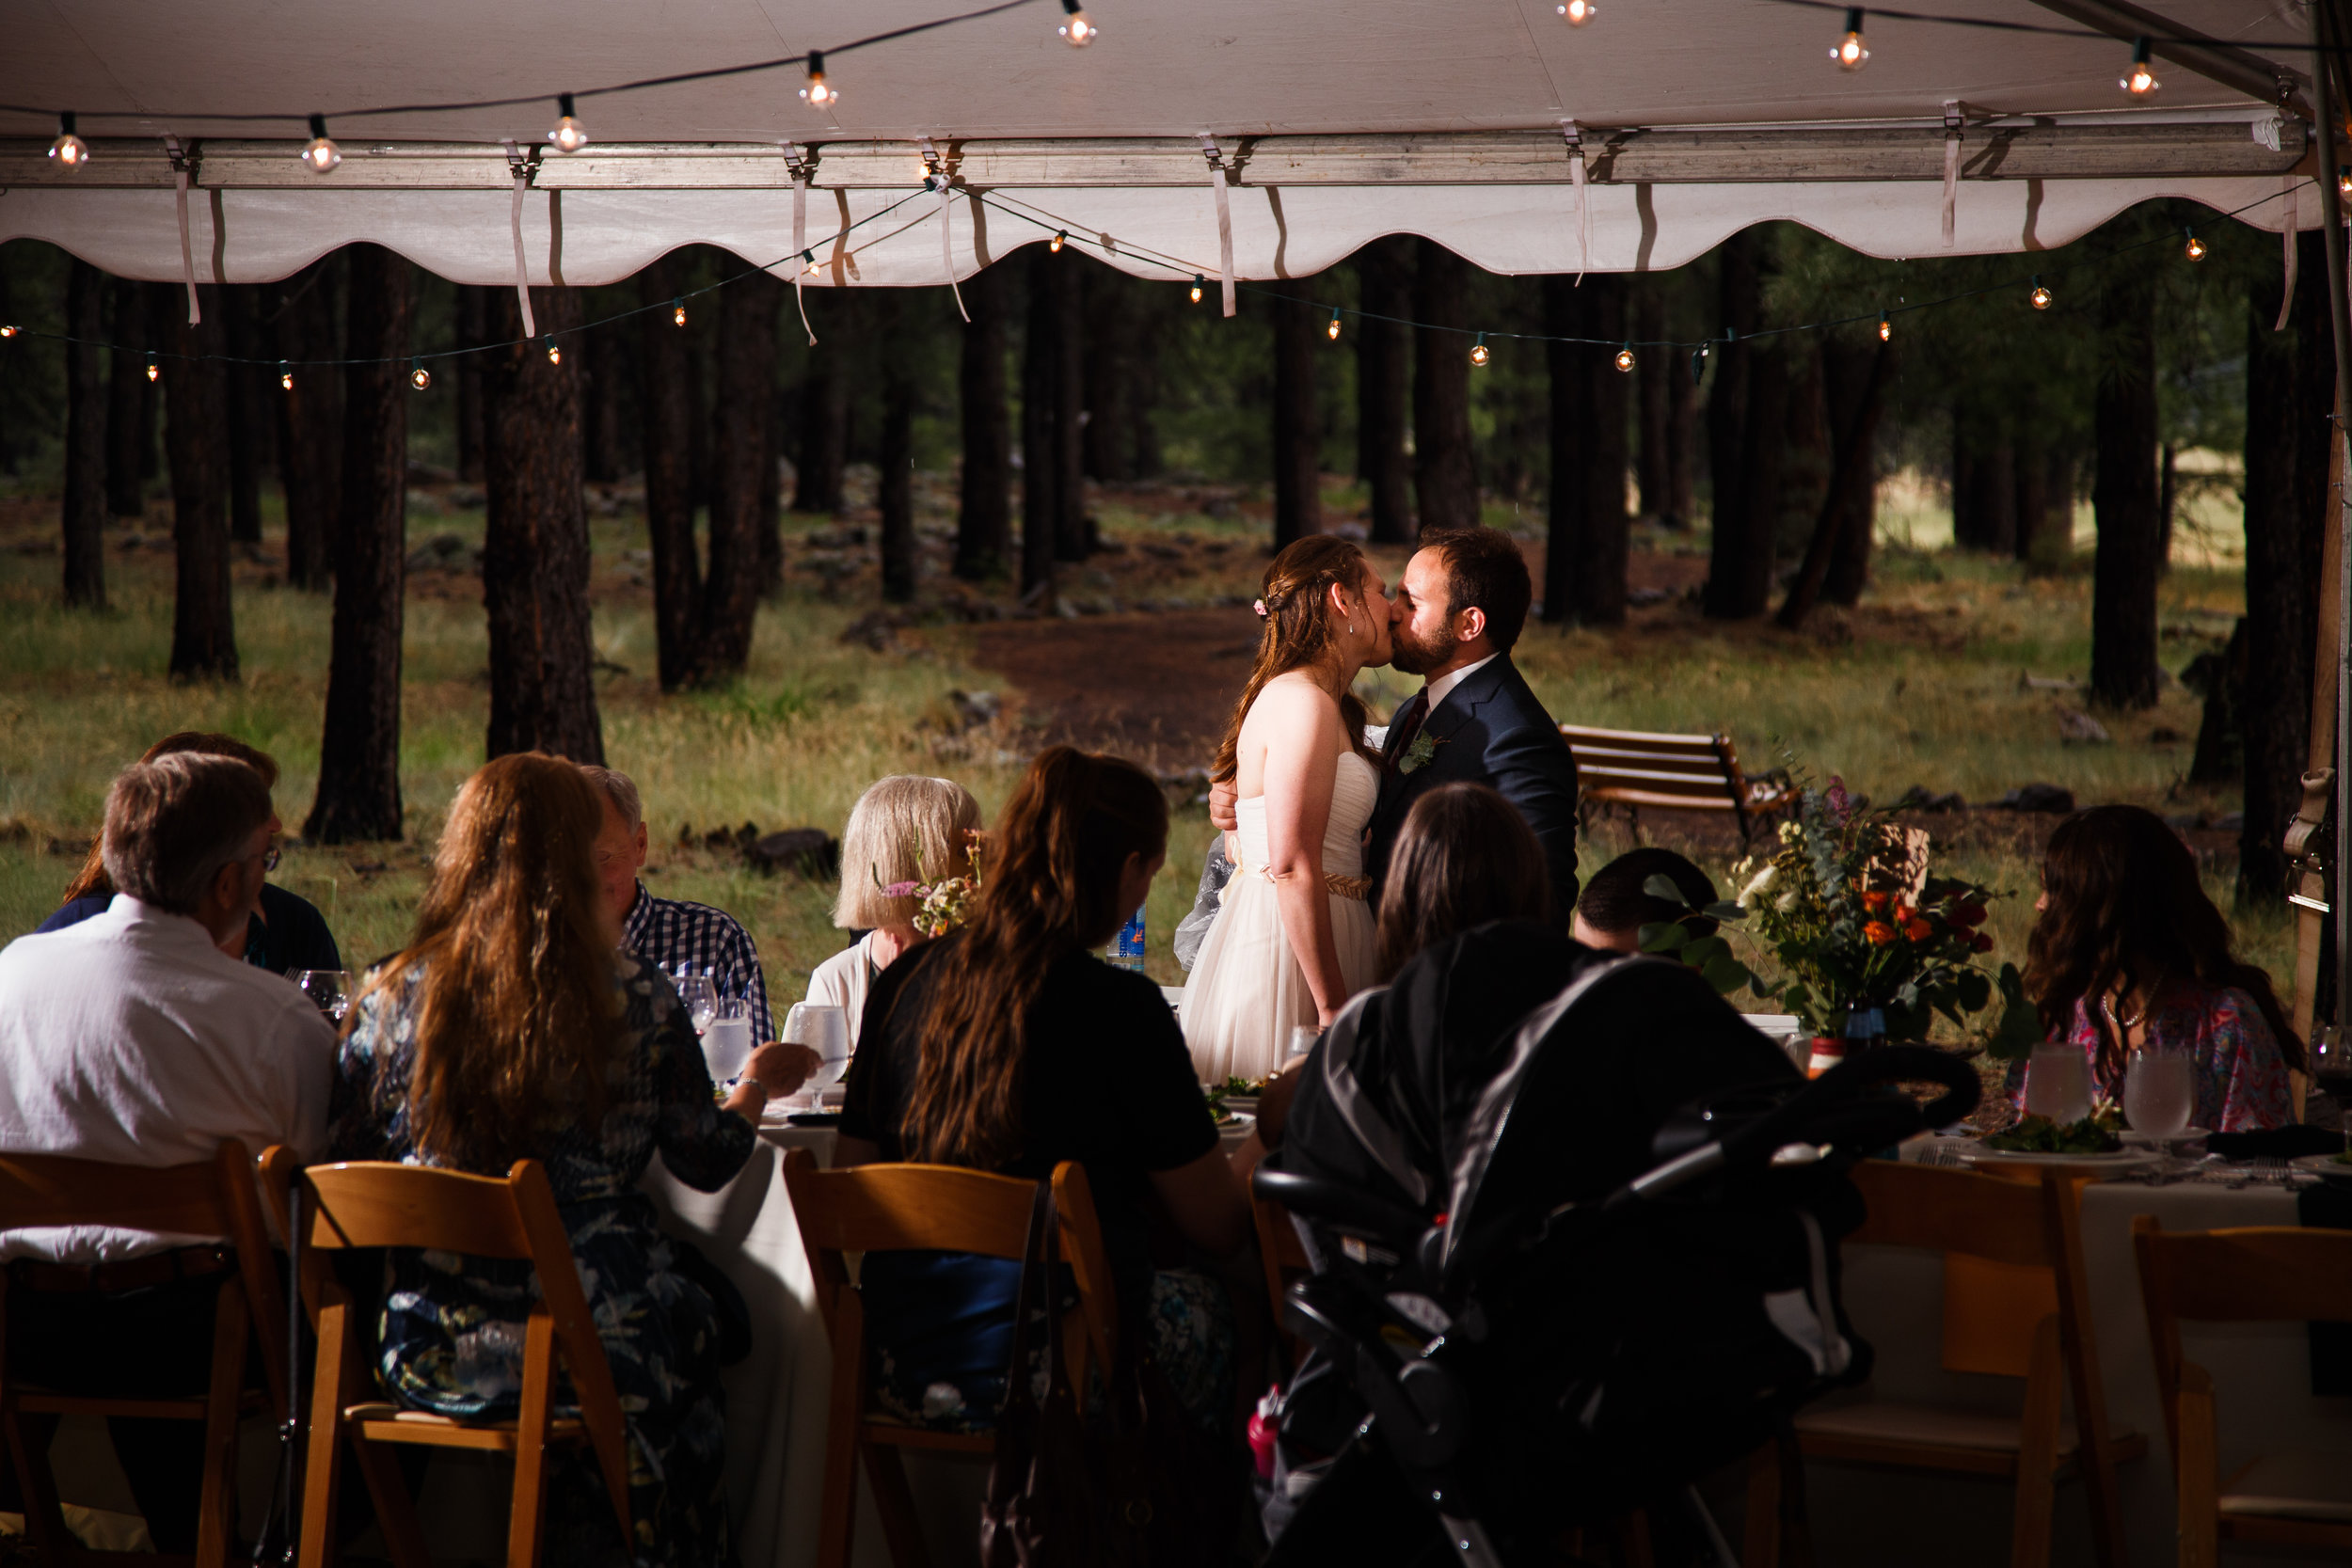 flagstaff-wedding-photography-3.jpg